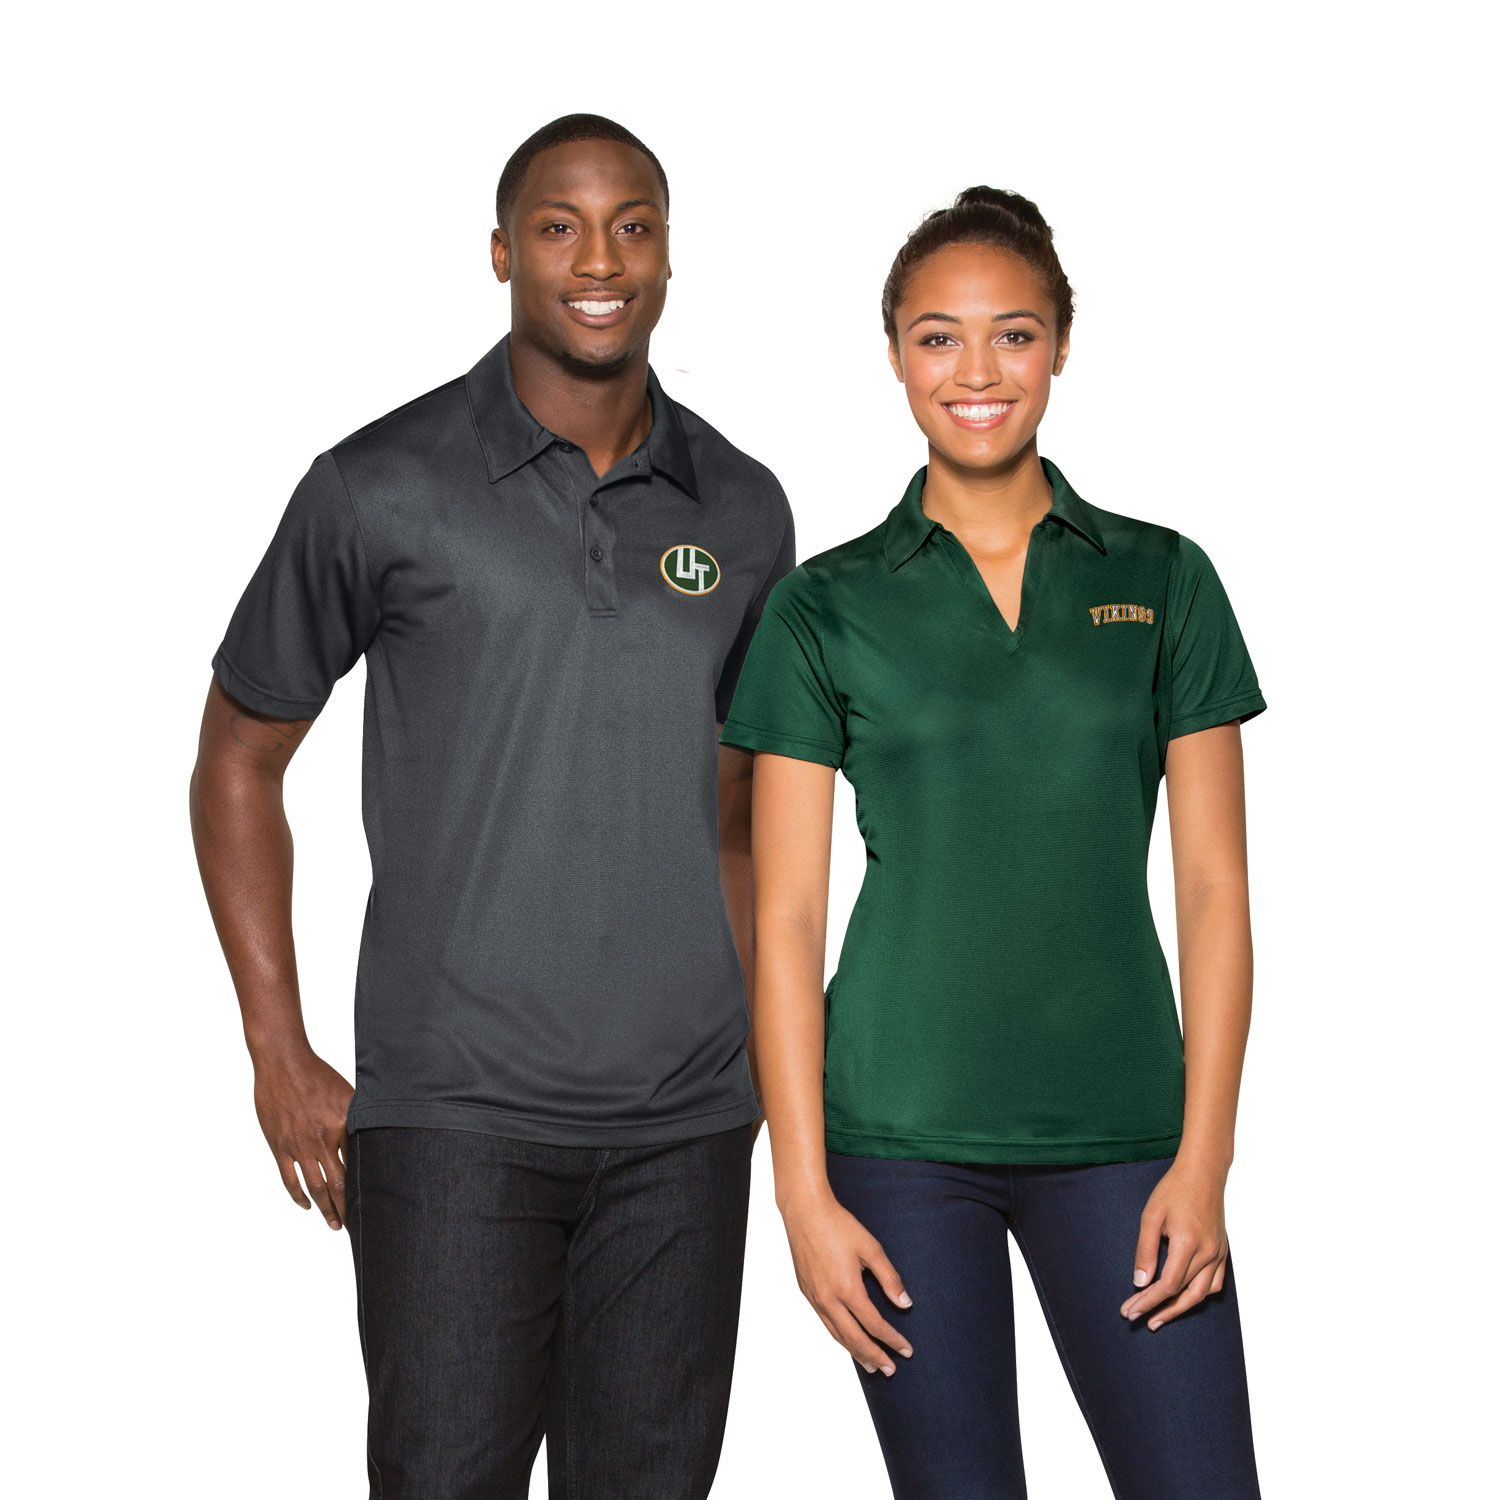 Sport Tek Polo Shirts Men And Women Styles Active Textured With